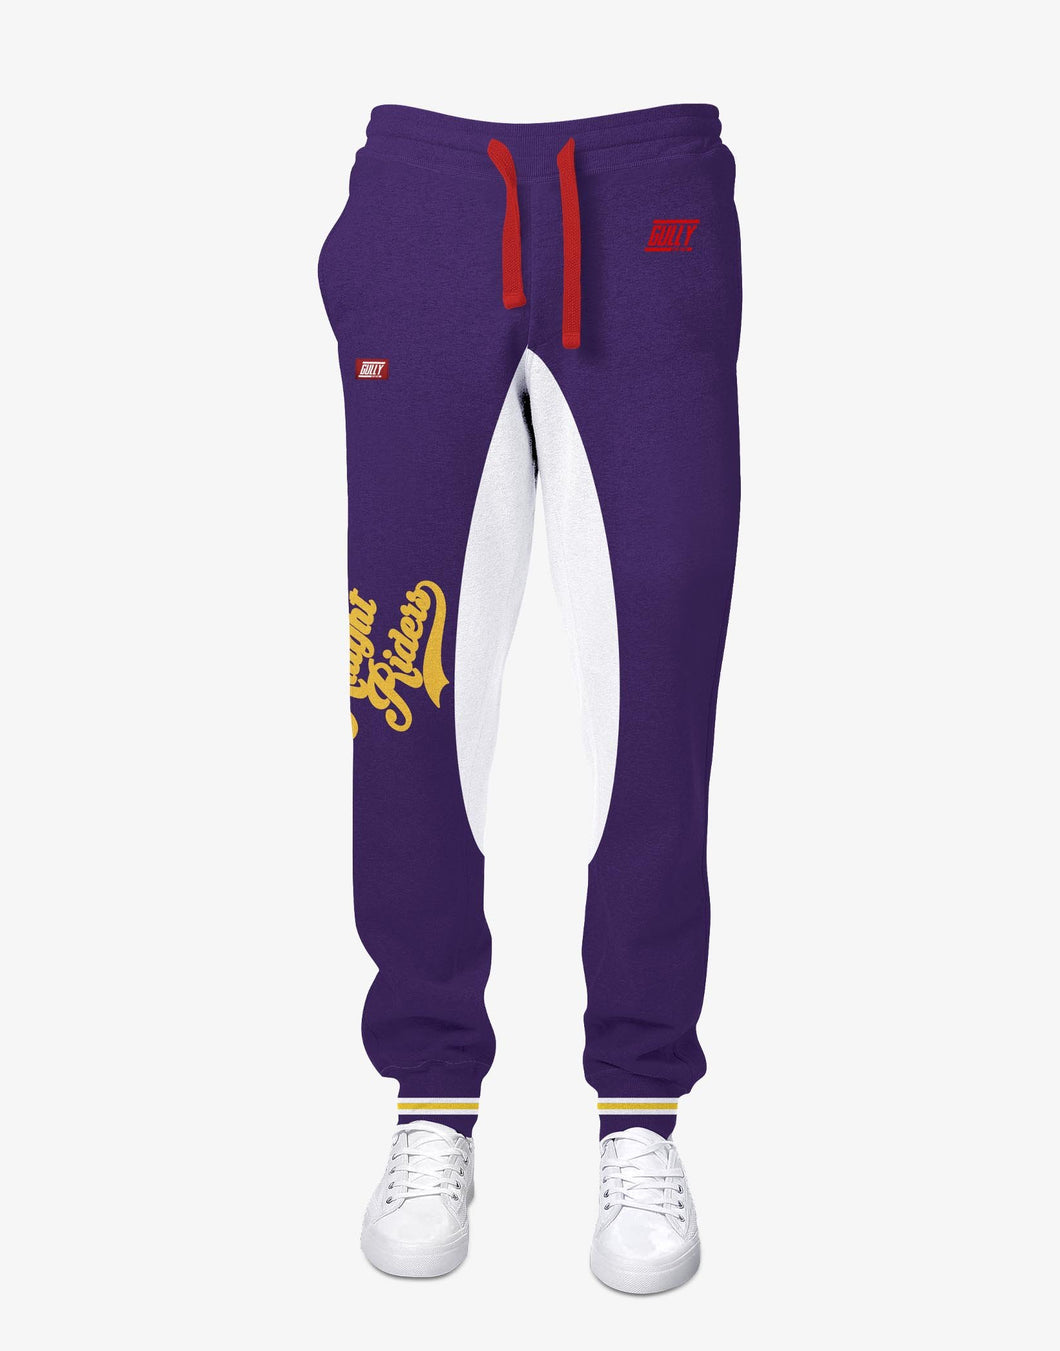 GULLY X KKR JOGGER (PURPLE)